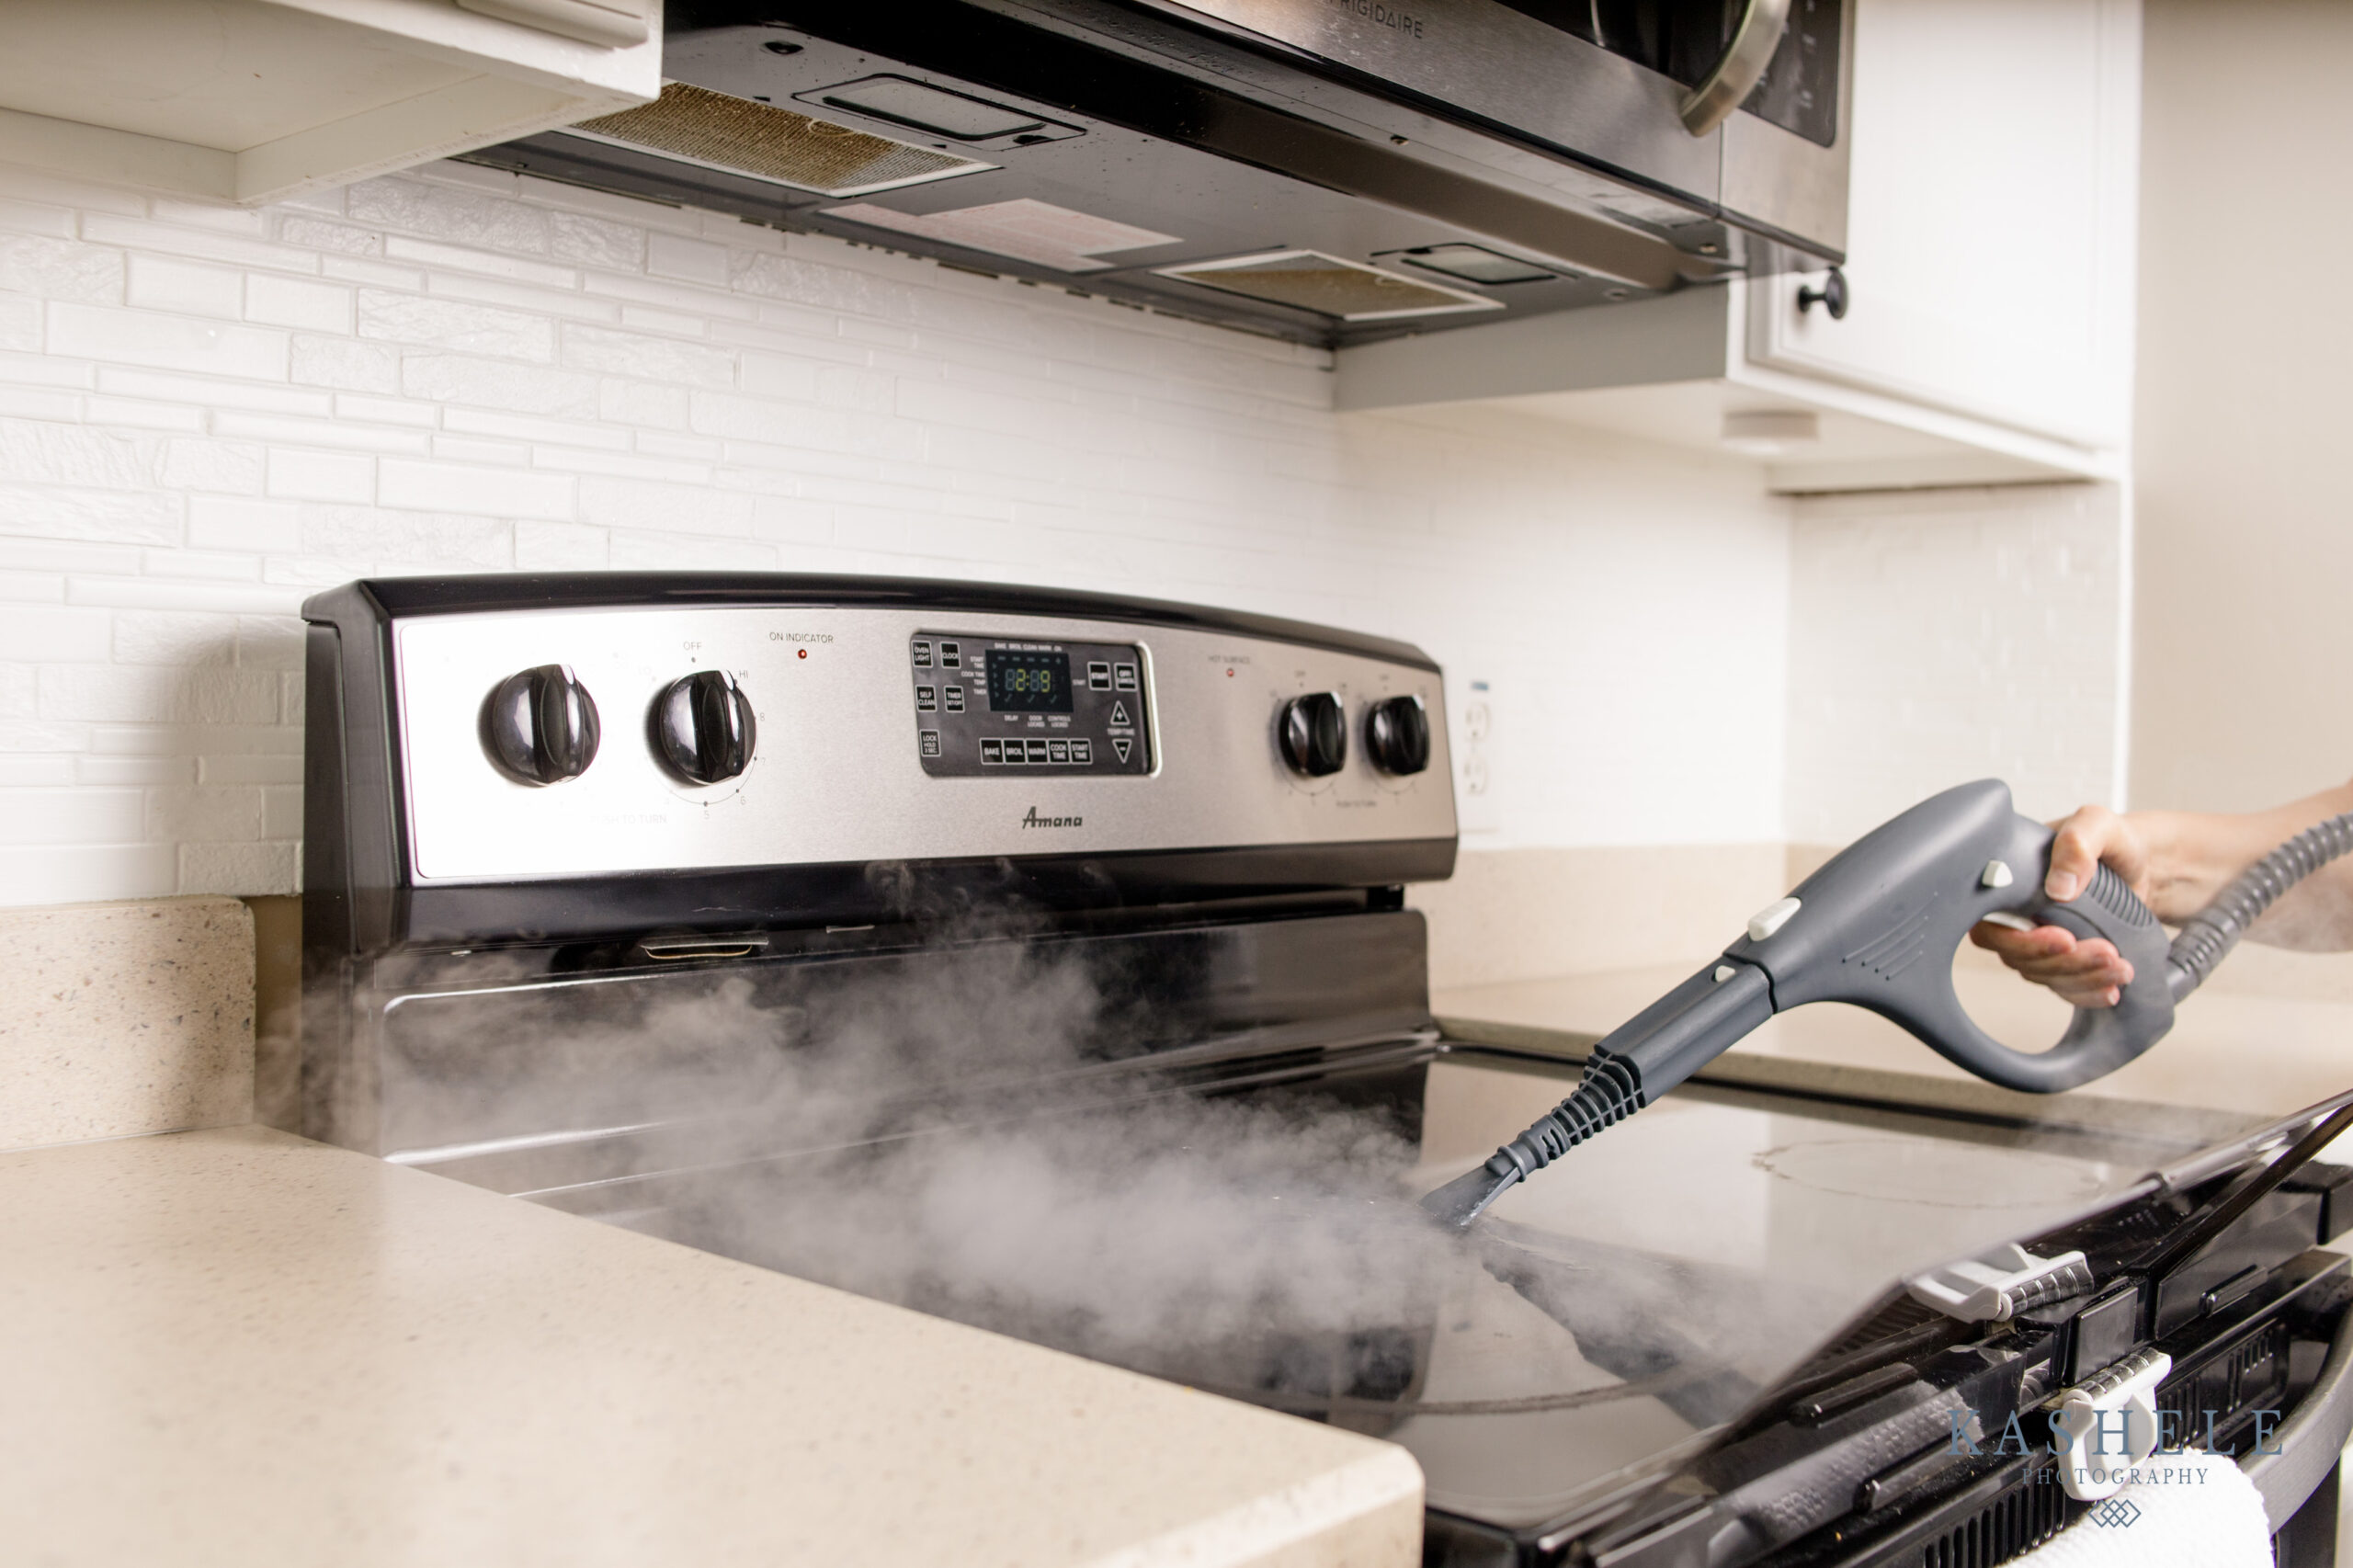 Lifestyle image of steam cleaning on a stovetop